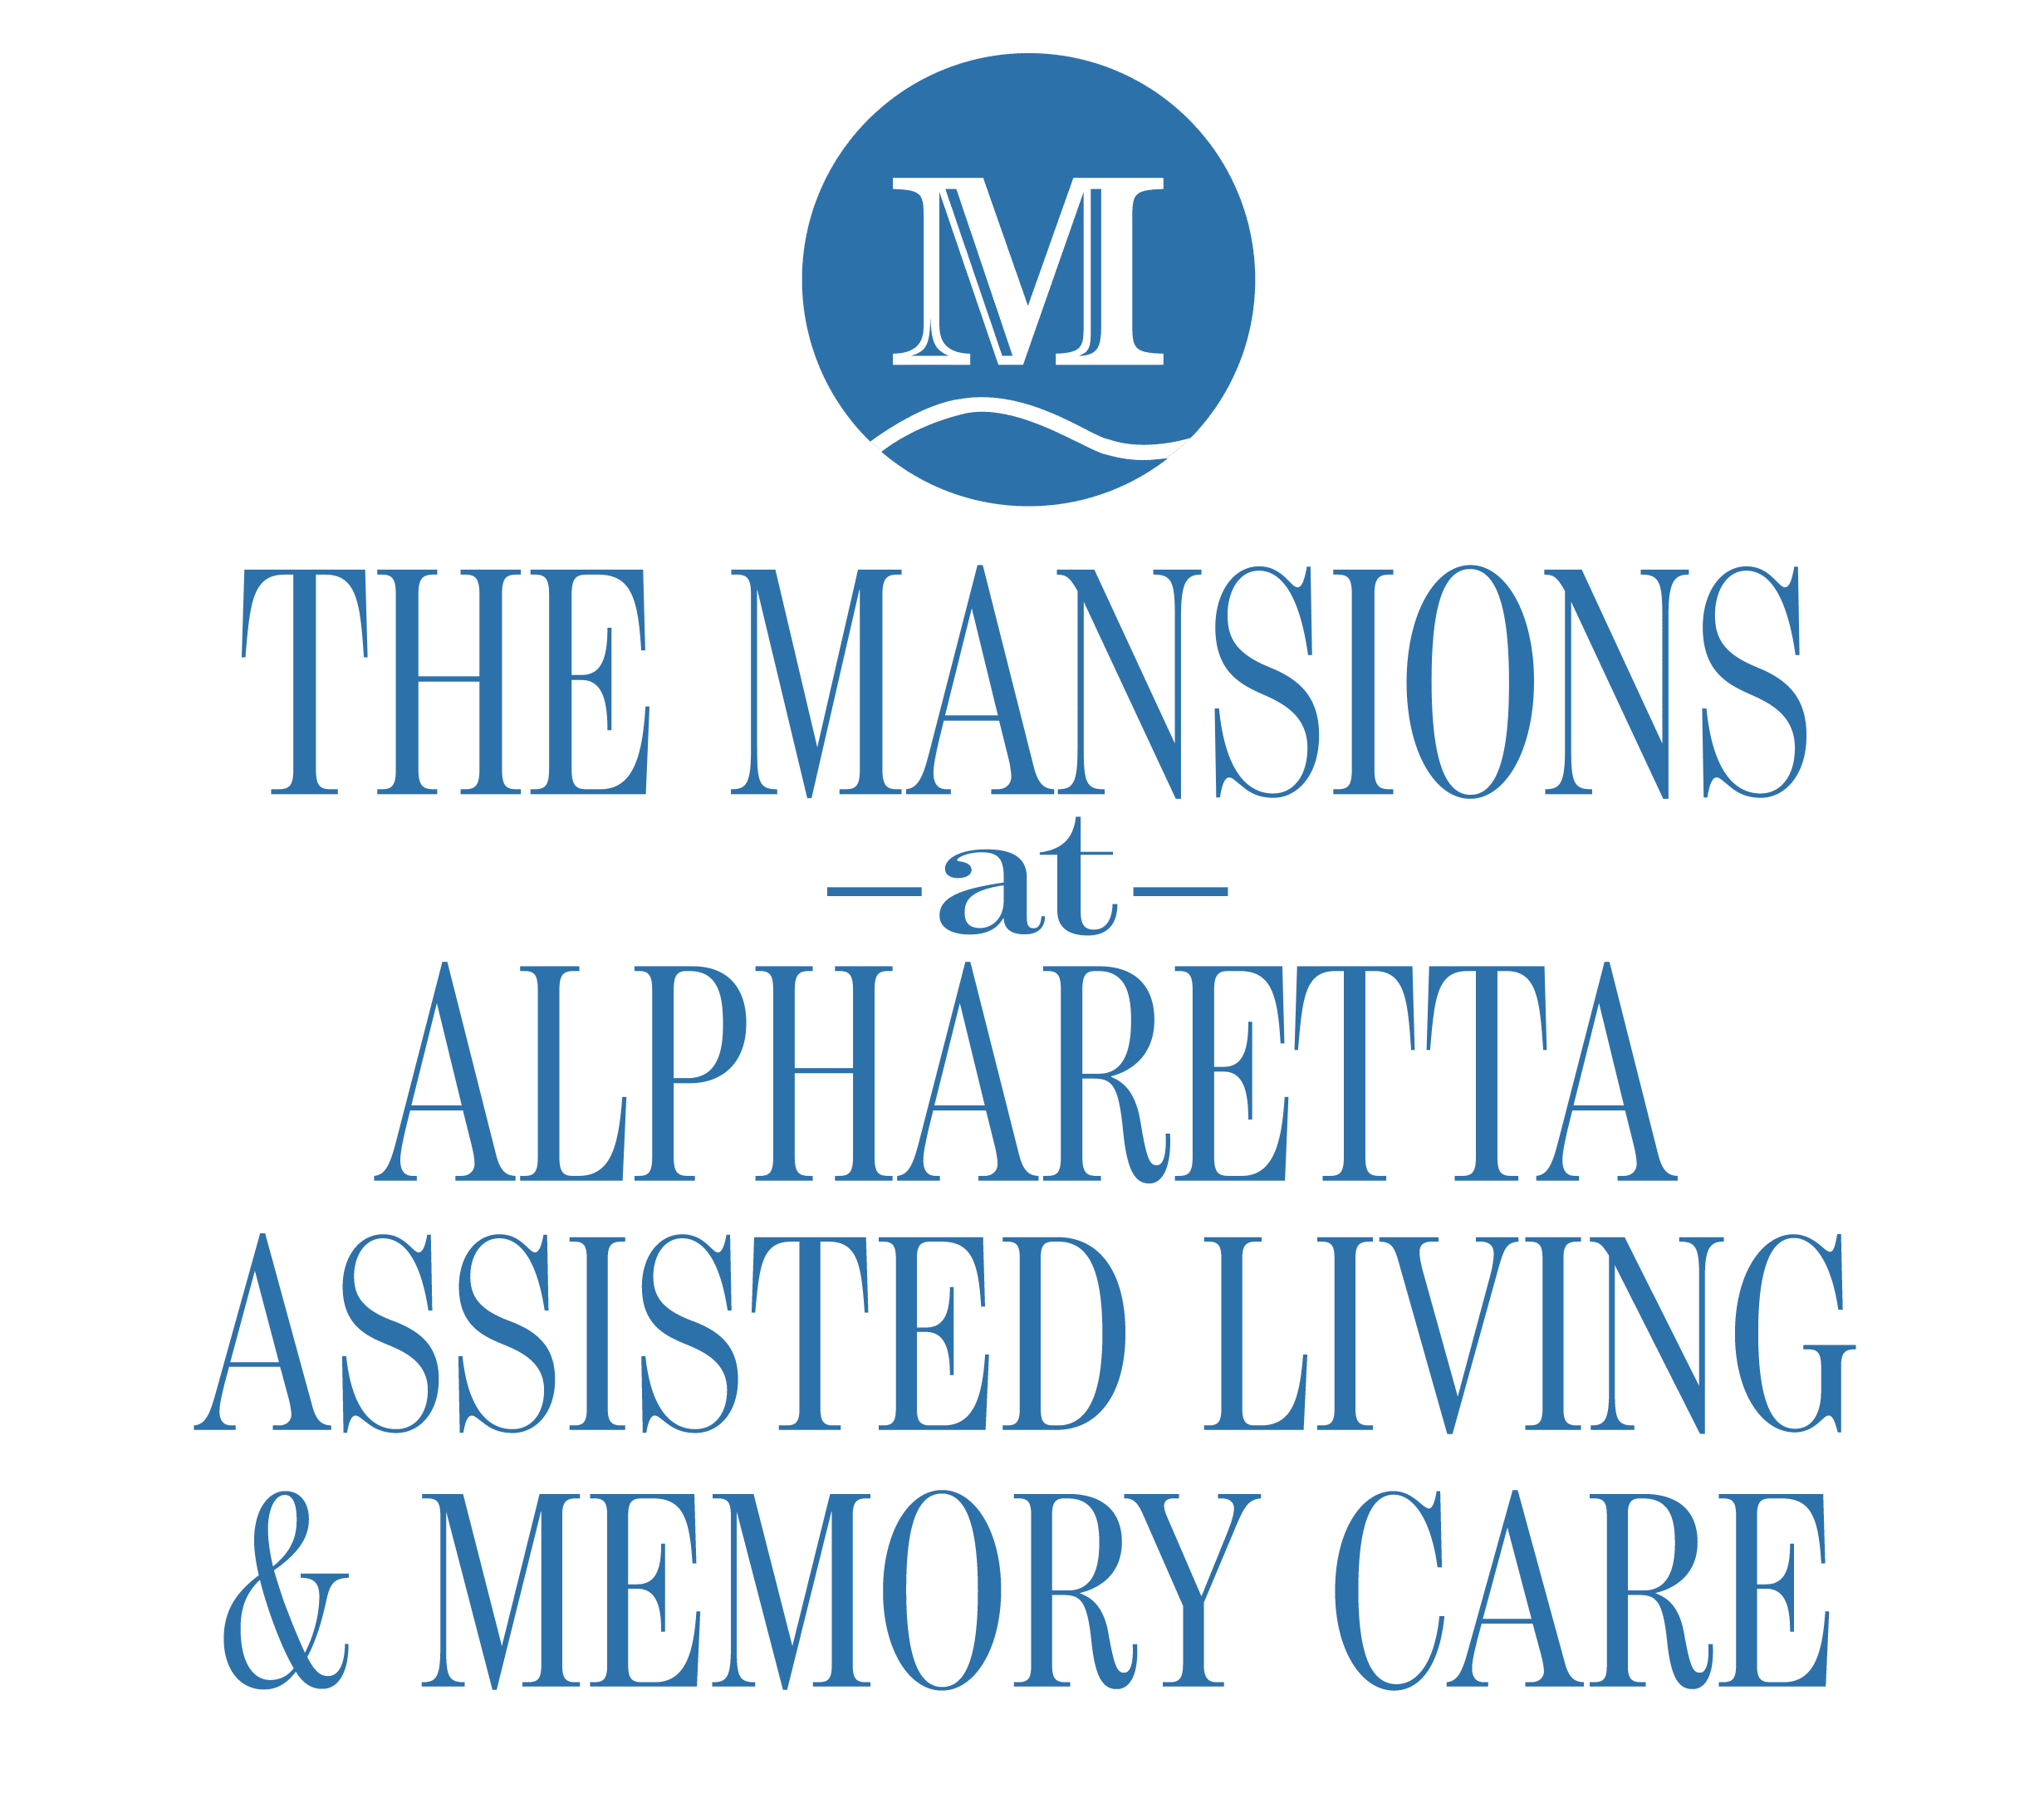 logo for The Mansions at Alpharetta in Alpharetta, Georgia